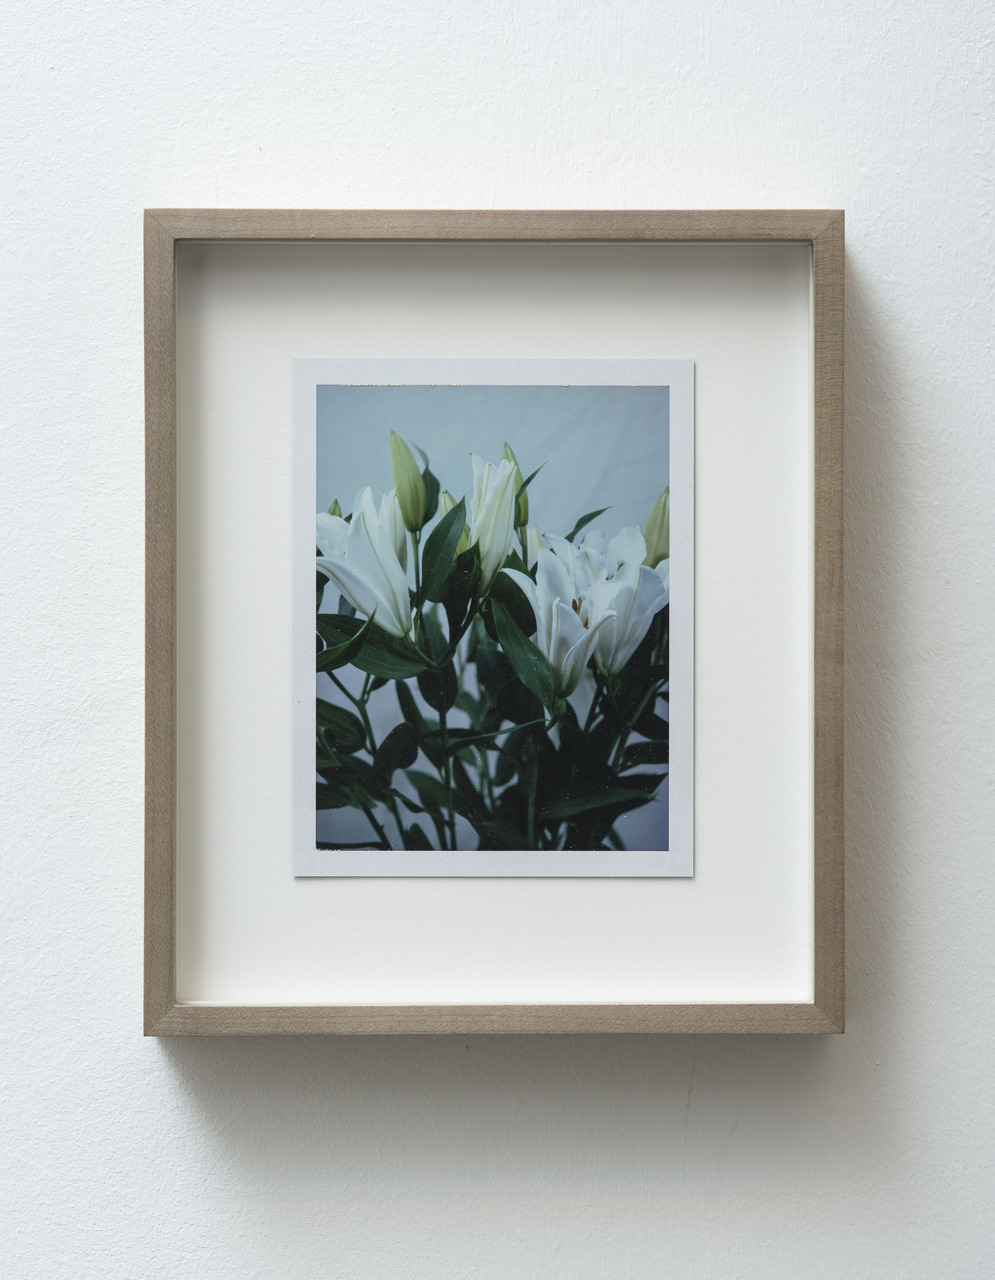 7_FG_Falls_Untitled (Life and death, Easter lilies)_diptych_A